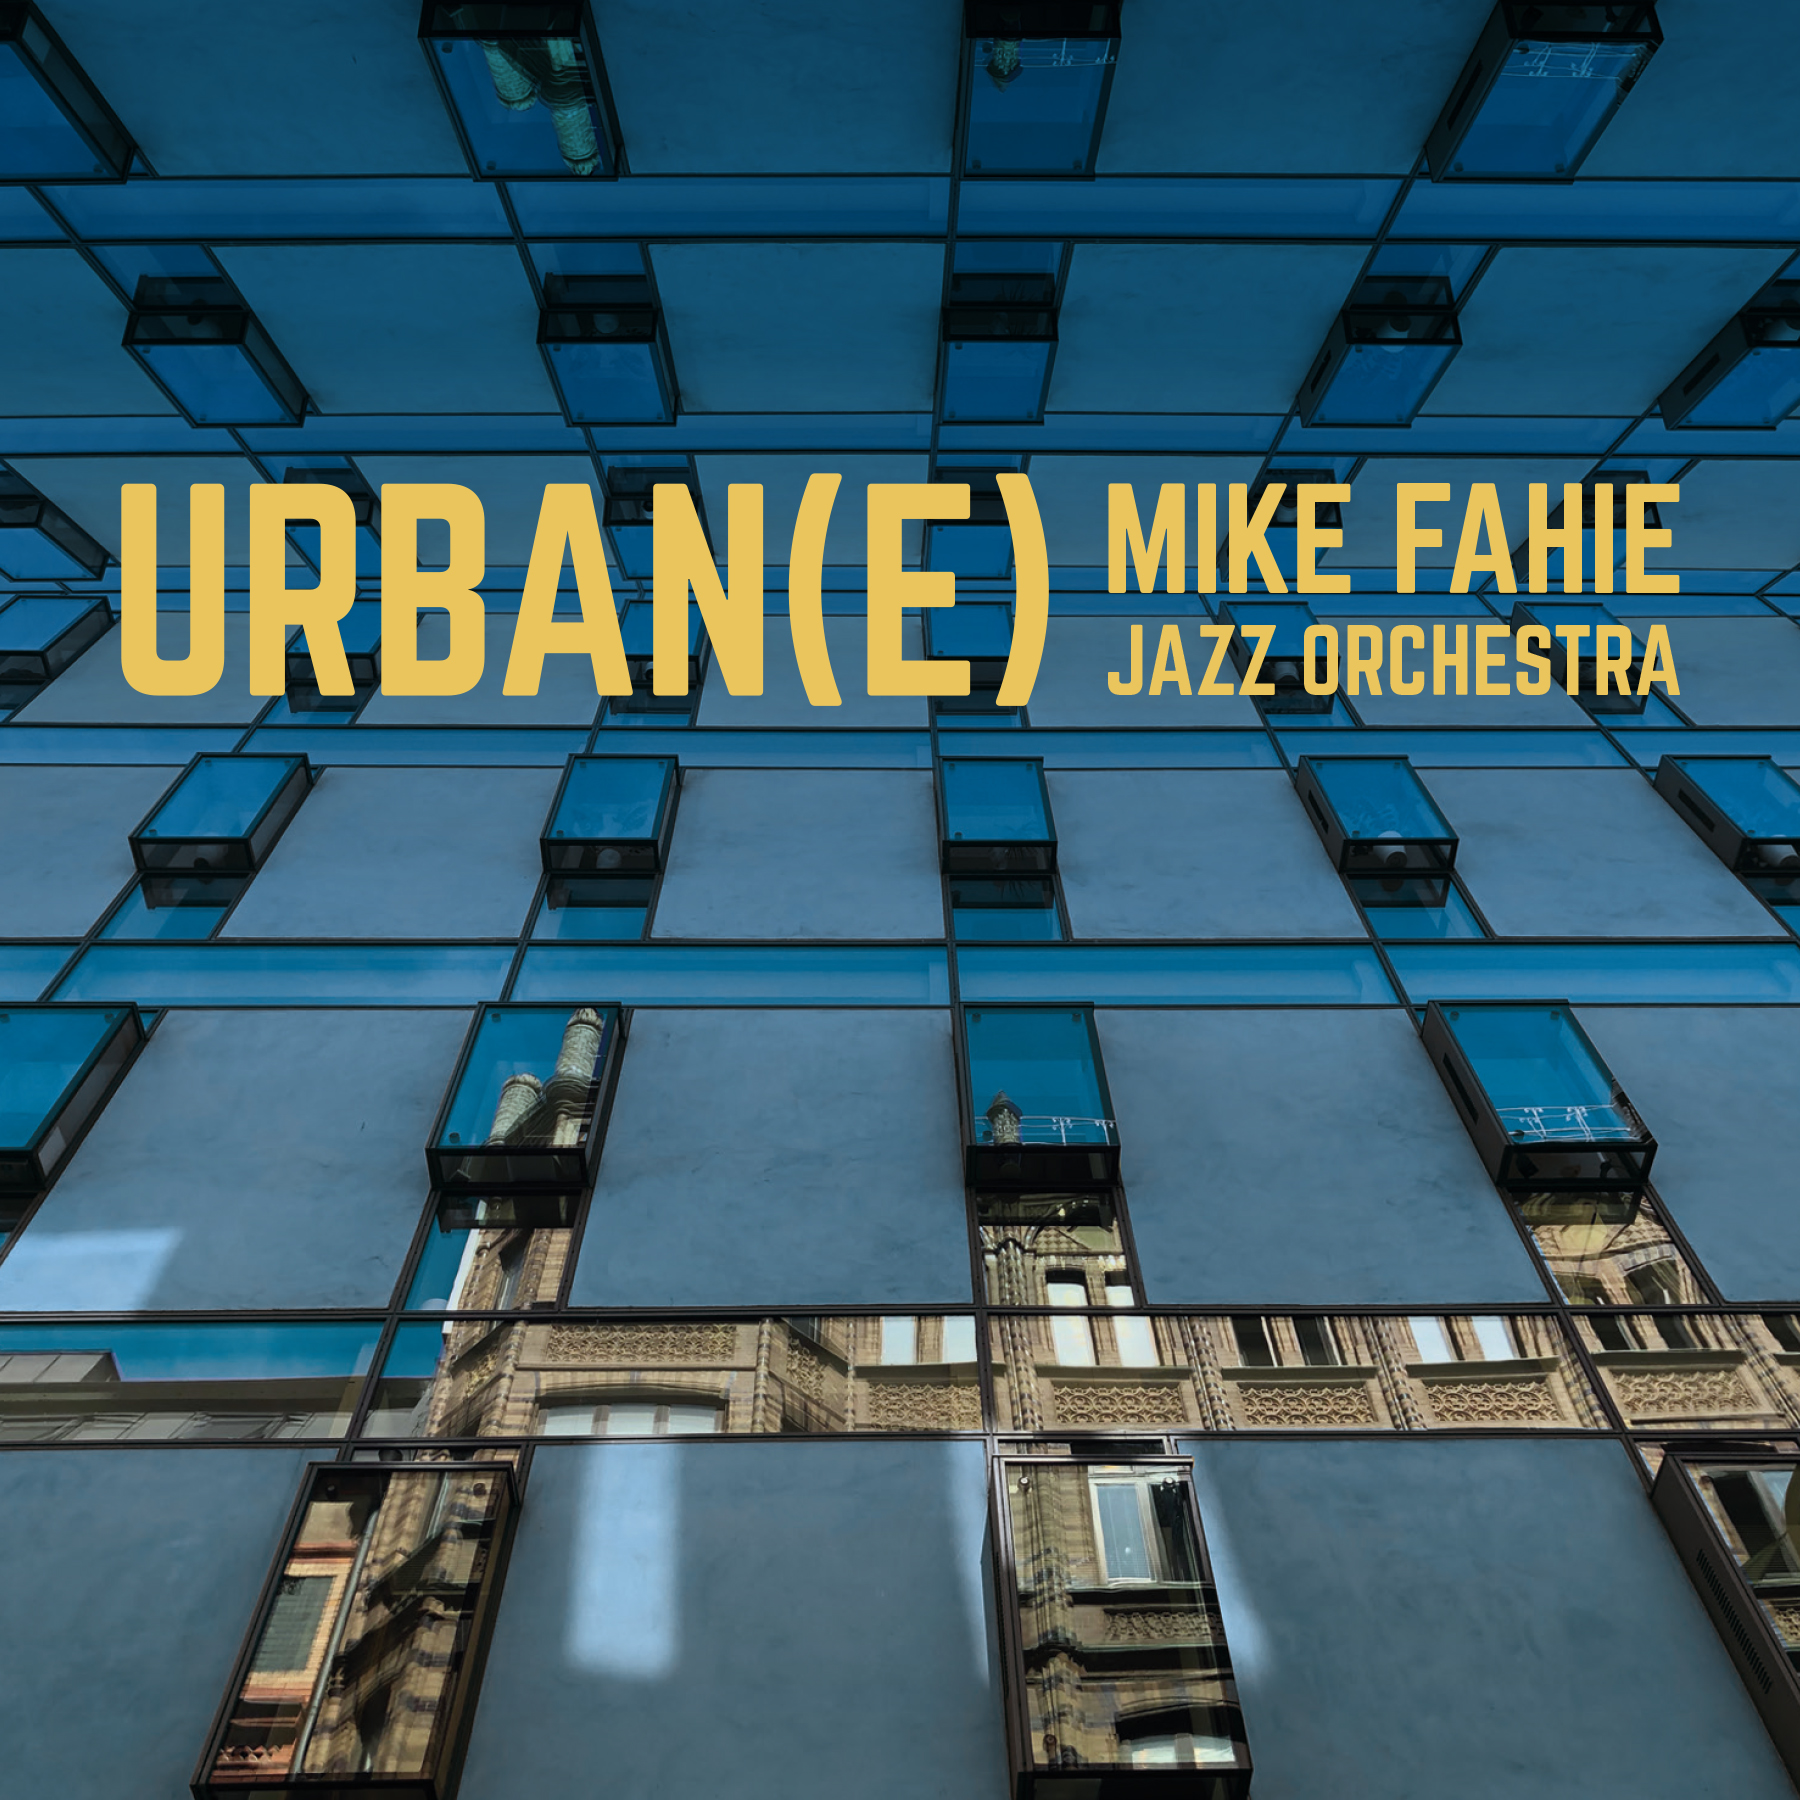 REVIEW: Mike Fahie Jazz Orchestra: URBAN(E) album review – All About Jazz